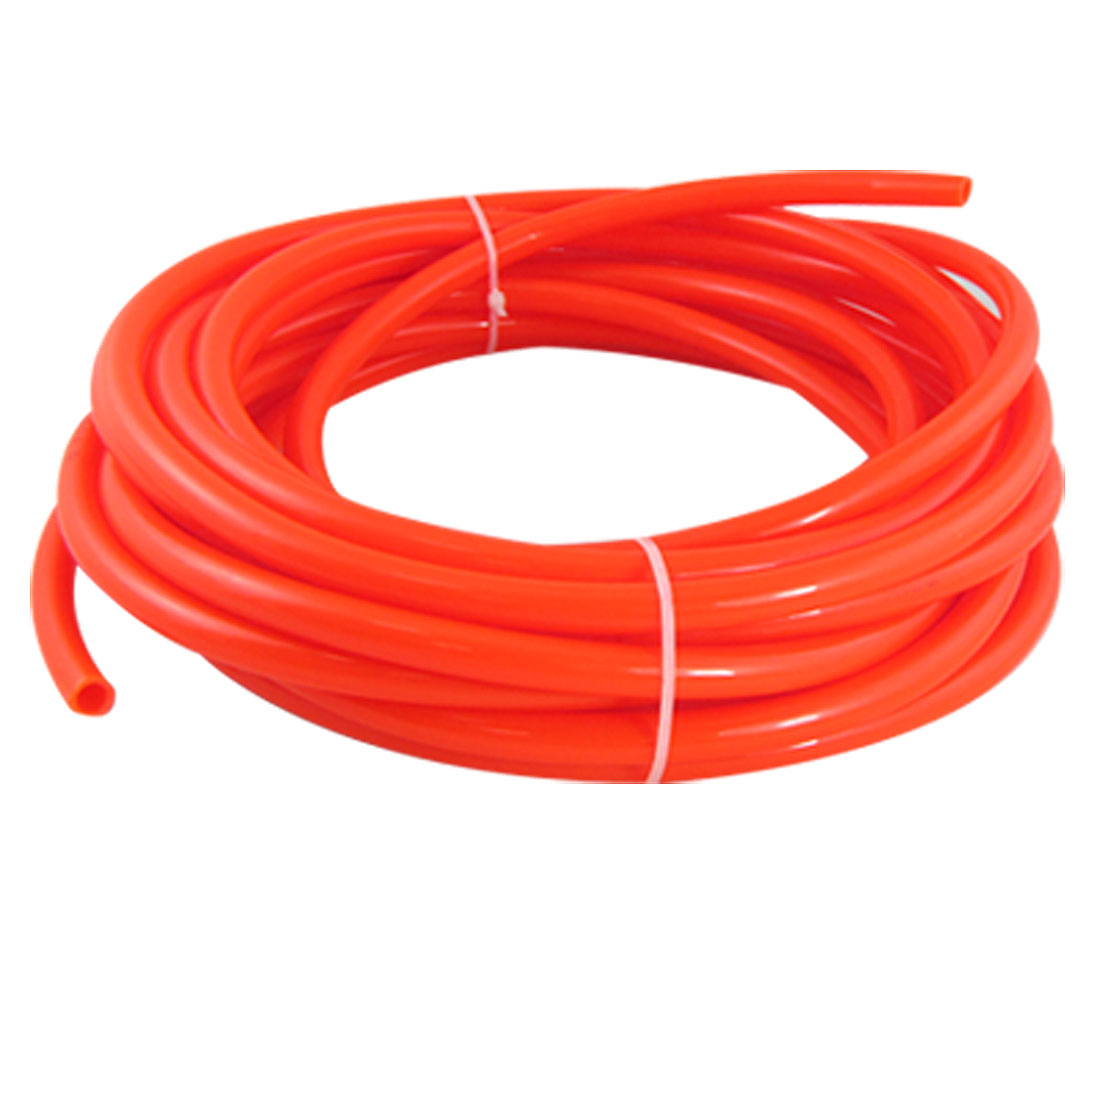 10M 32.8Ft 10mm x 6.5mm Pneumatic Air PU Hose Pipe Tube Orange Red